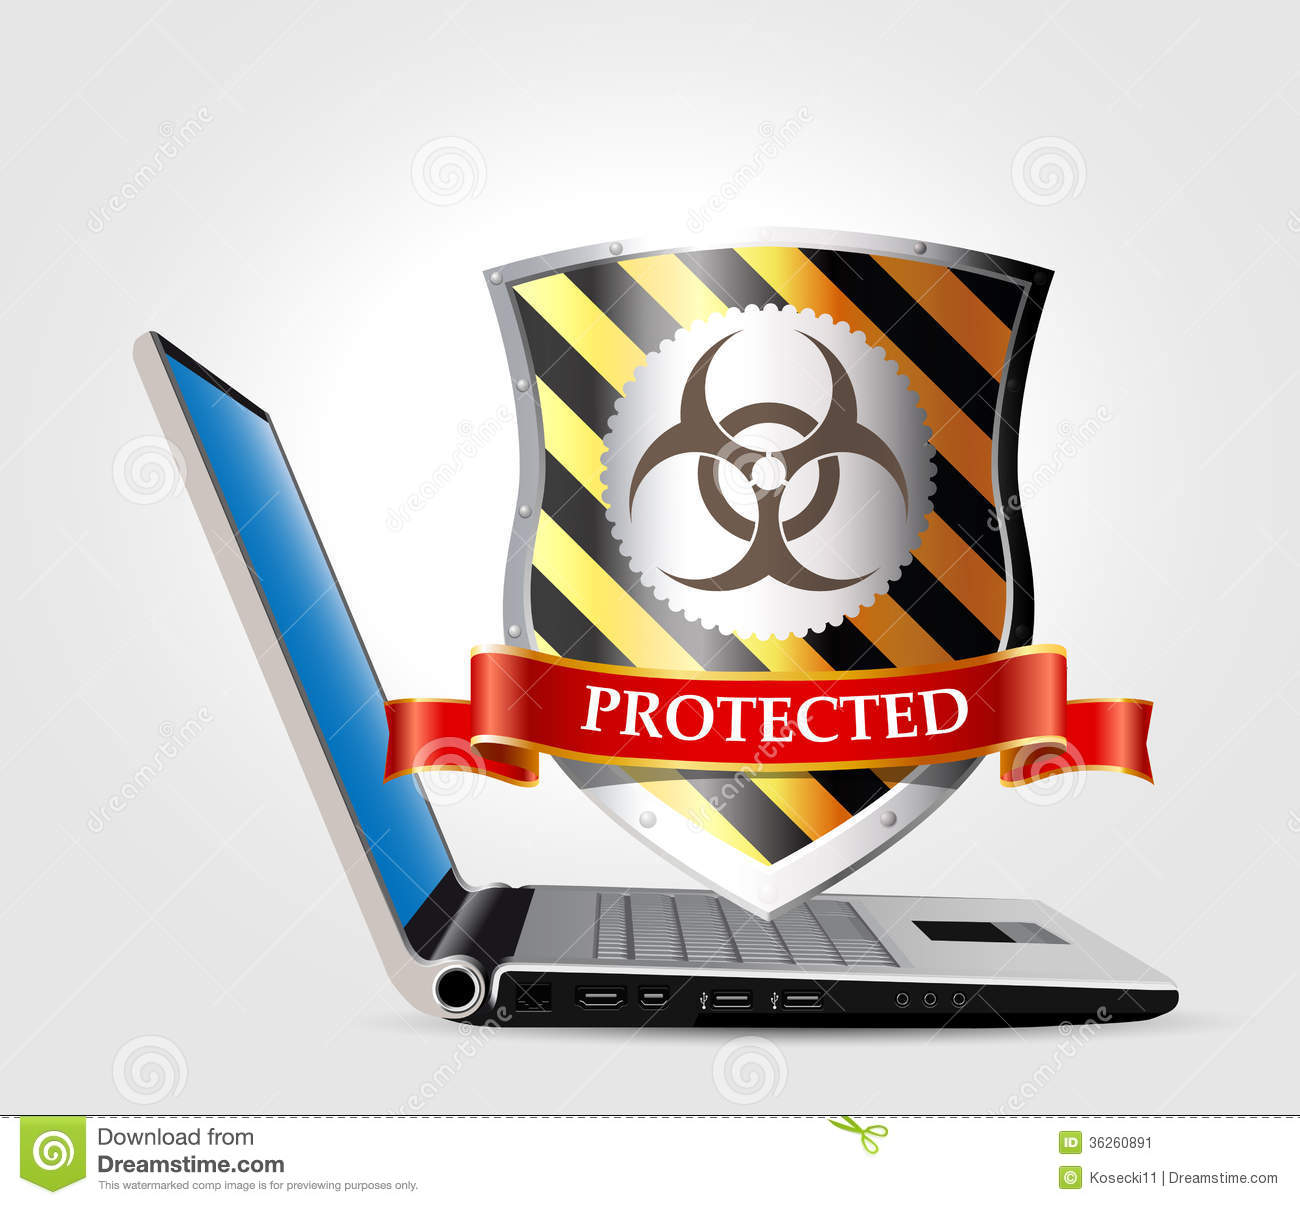 Computer security - database and Internet security.